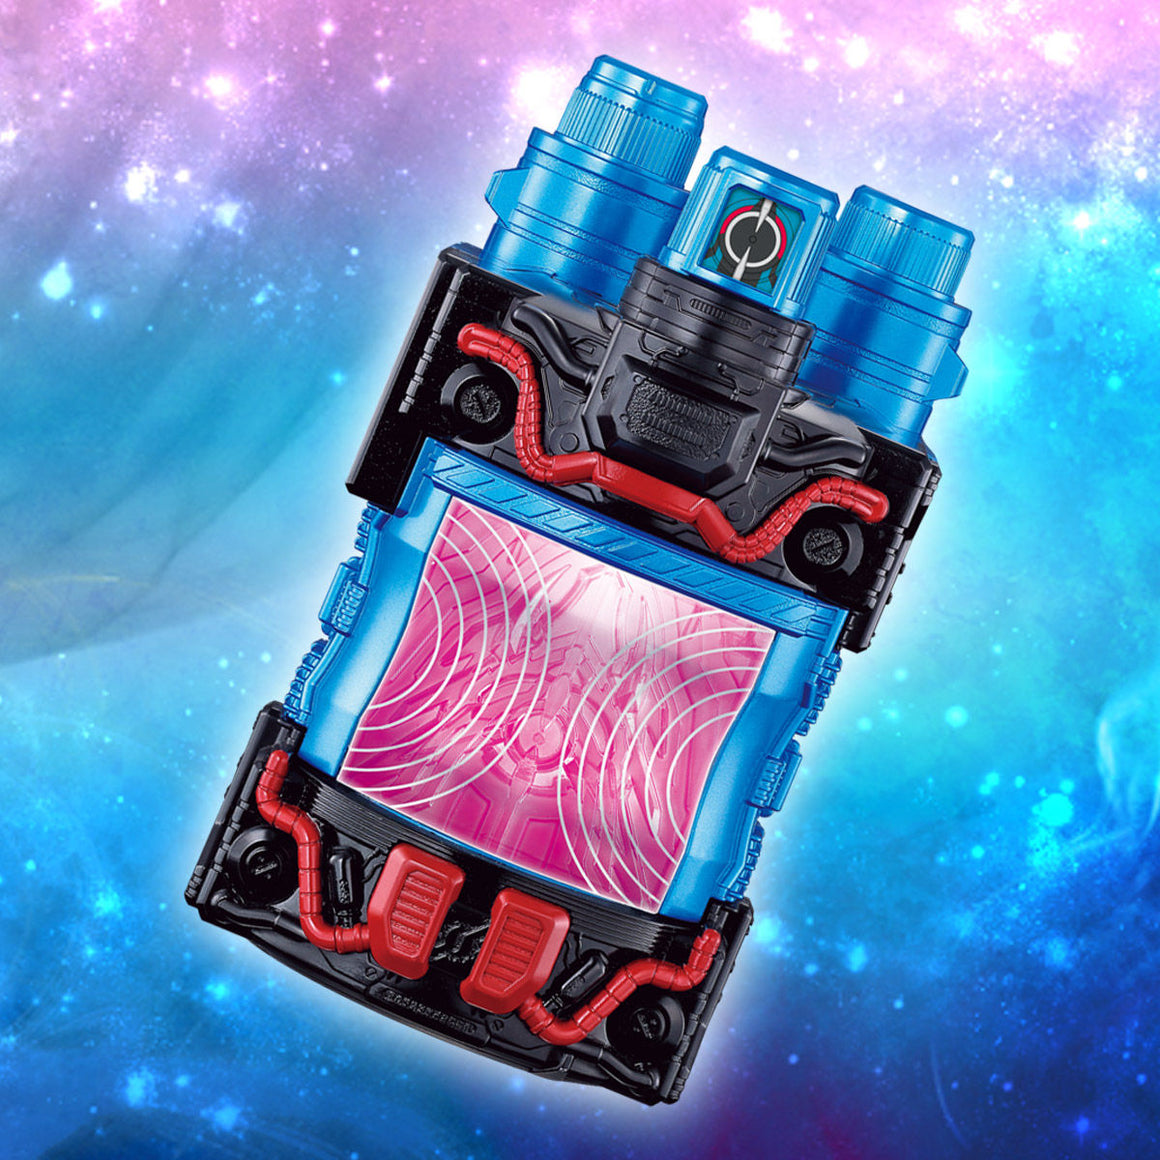 CSTOYS INTERNATIONAL:[BOXED] Kamen Rider Build: DX Muscle Galaxy Fullbottle & DVD Set